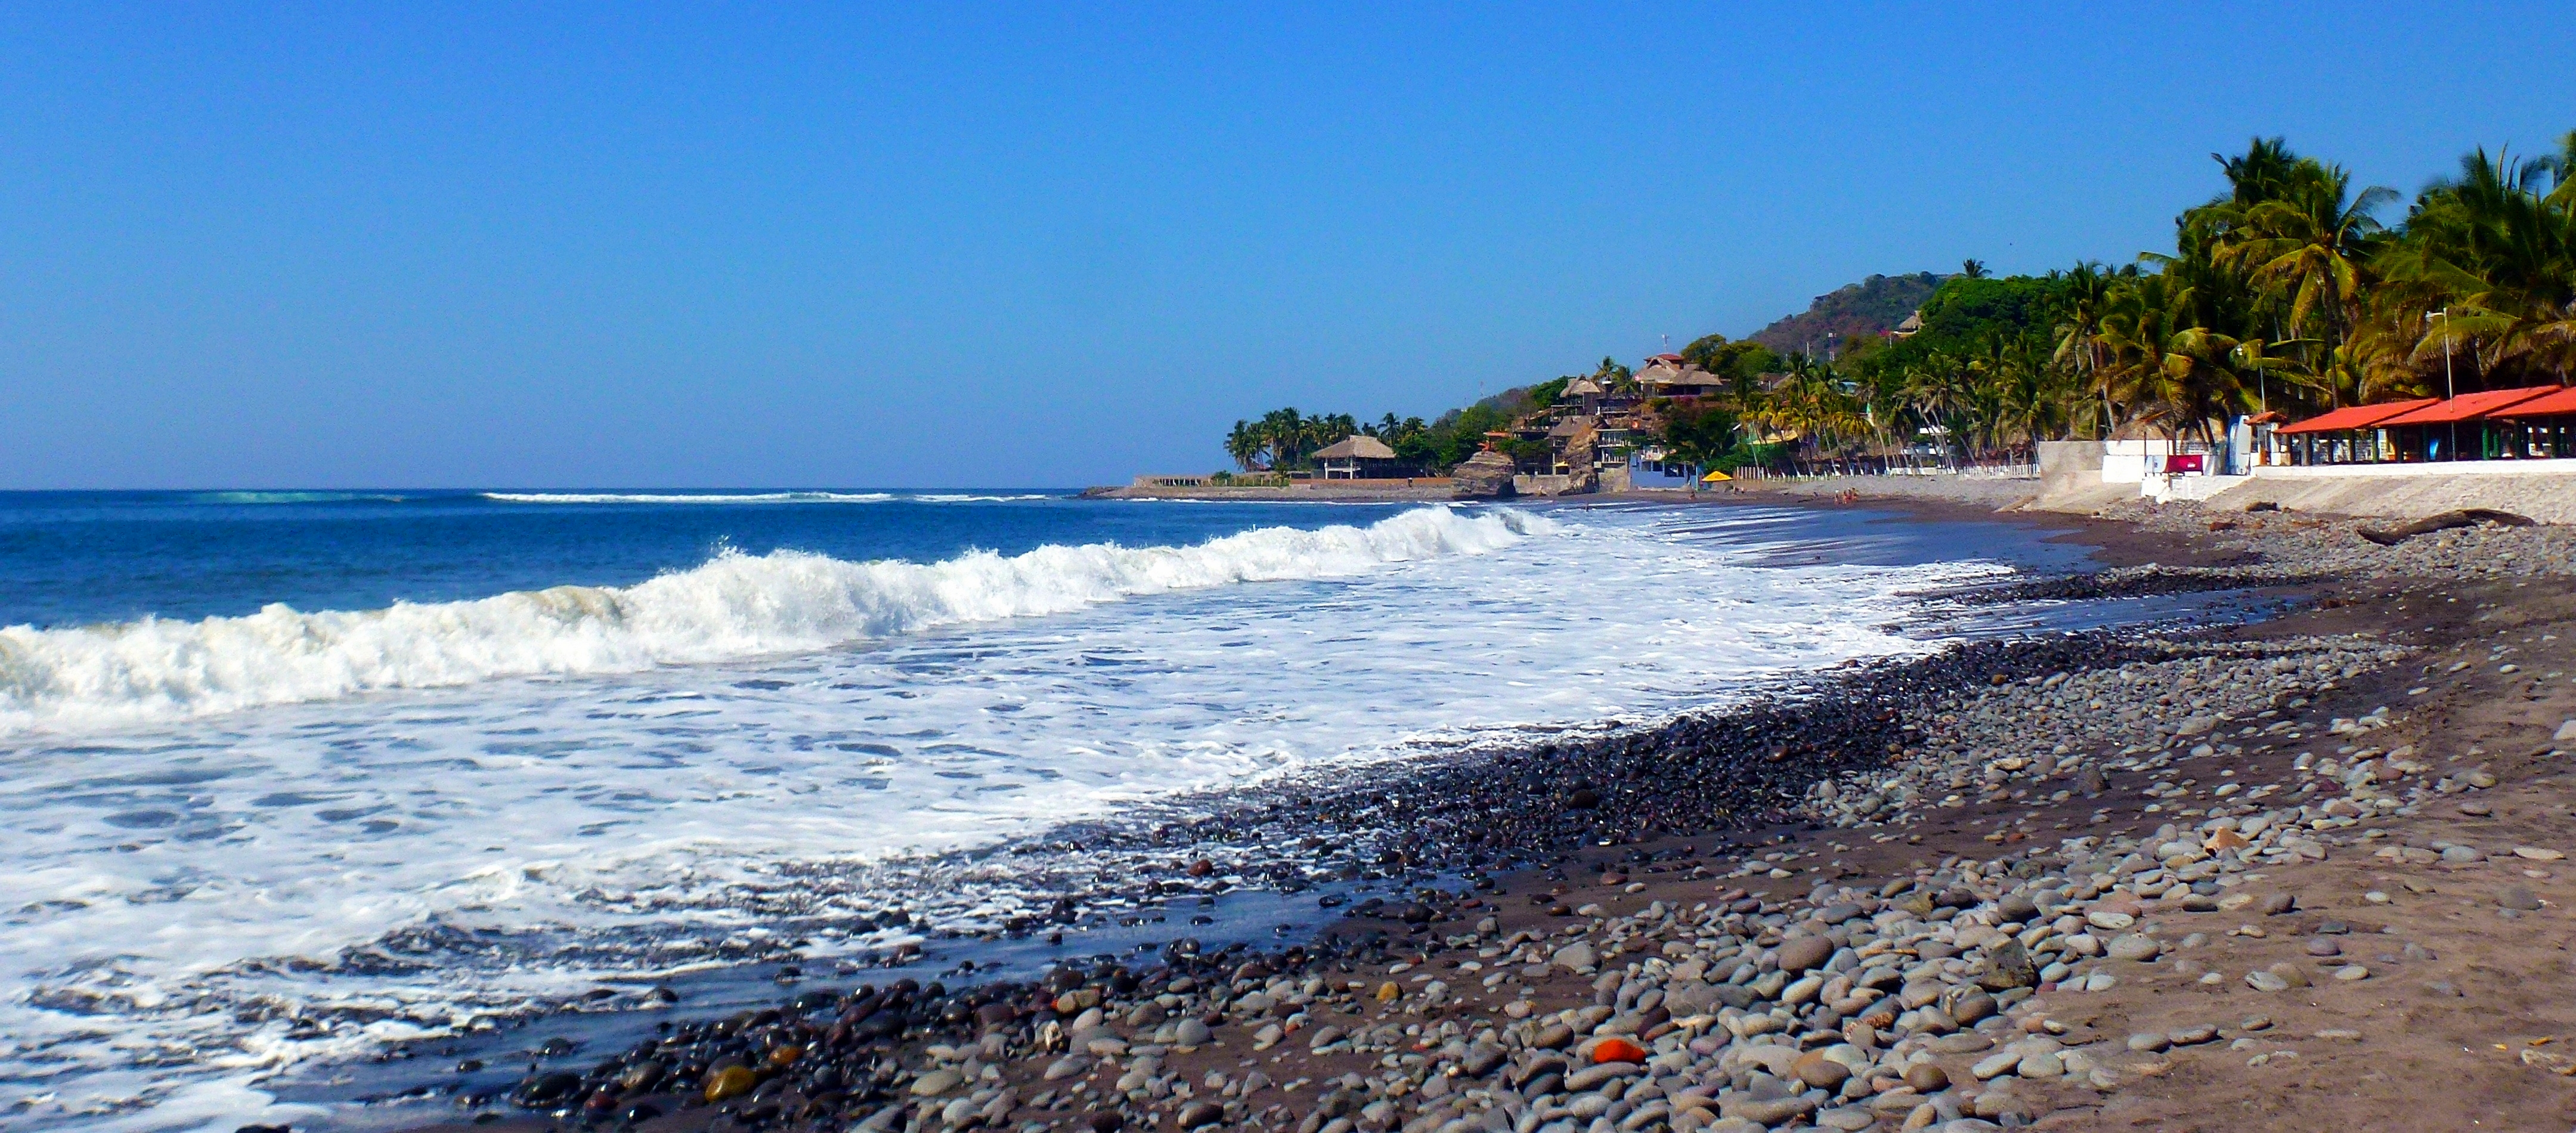 El Salvador – Vibrant Art Scenes & Laid-back Surf Beaches